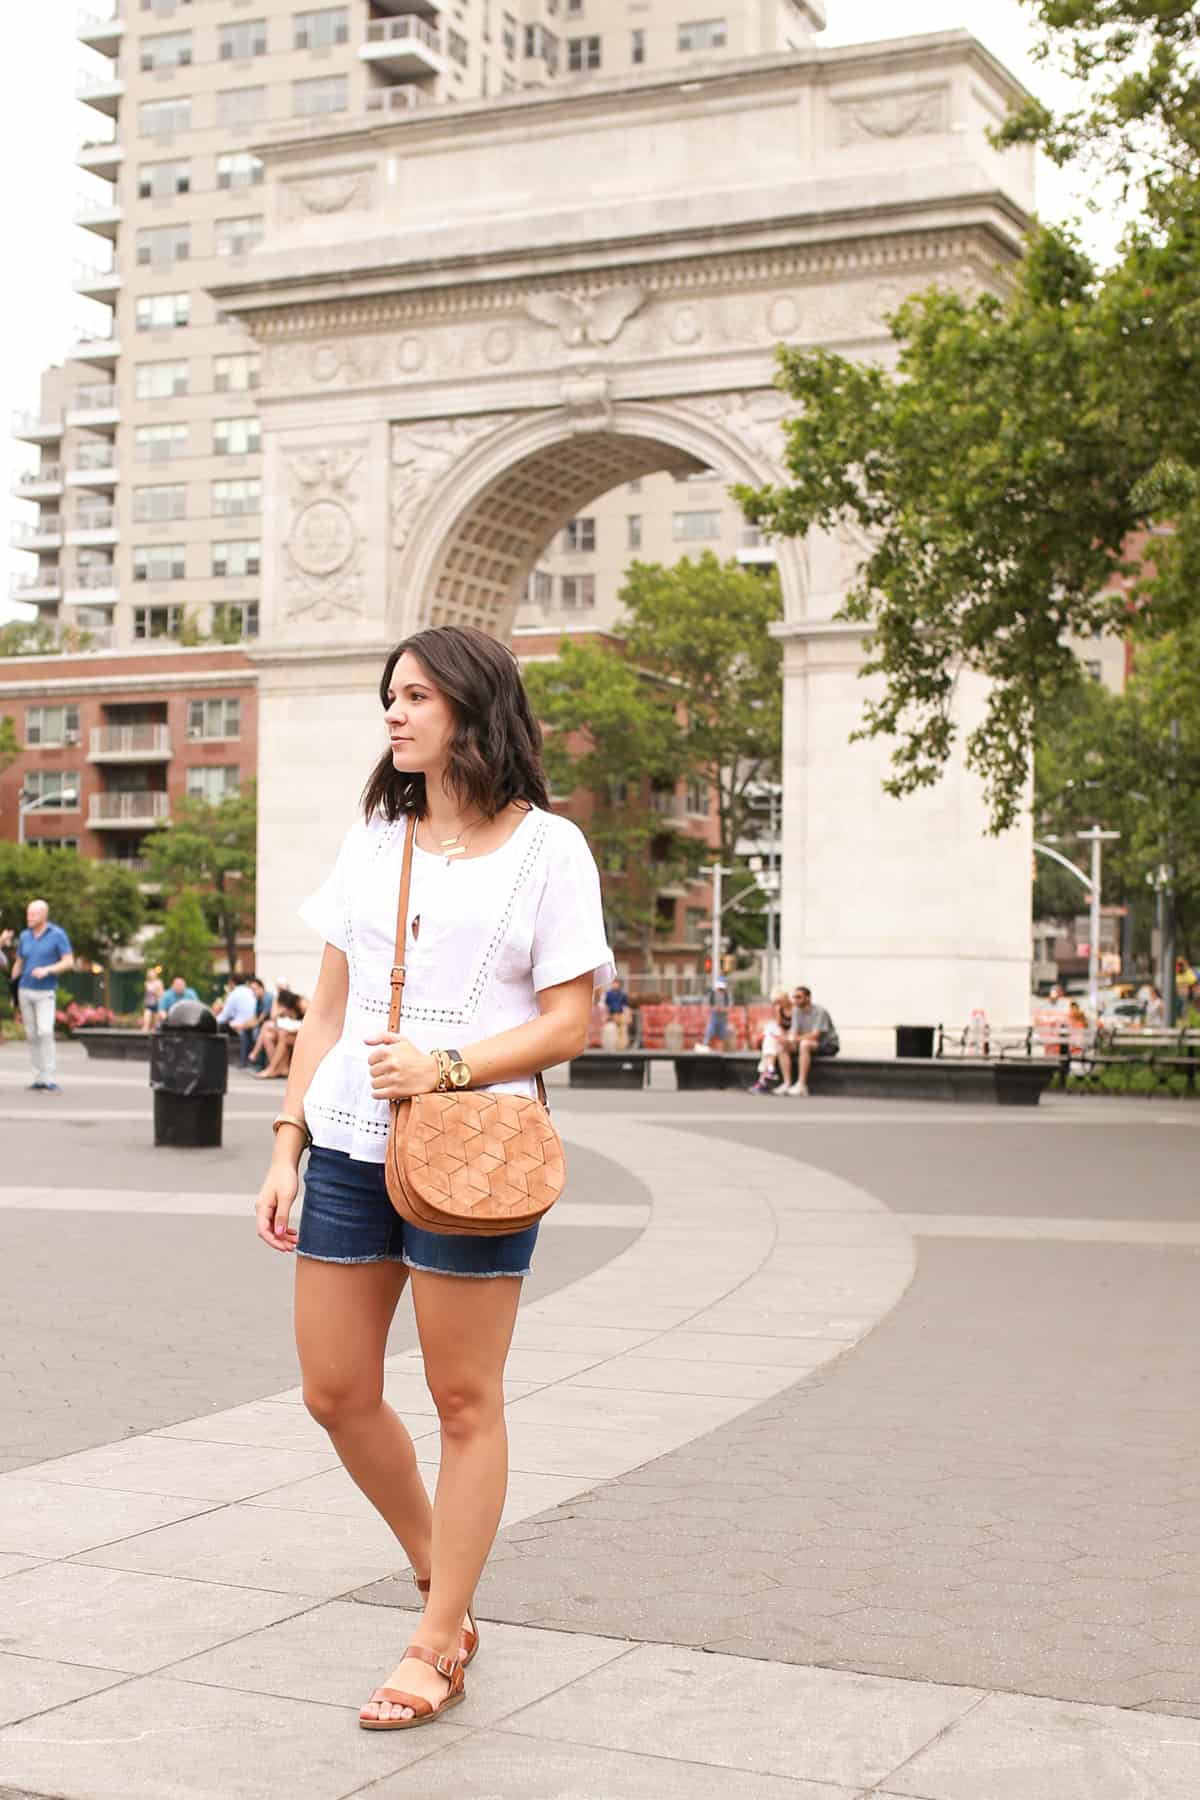 Casual Summer Outfit For a NYC Stroll | My Style Vita